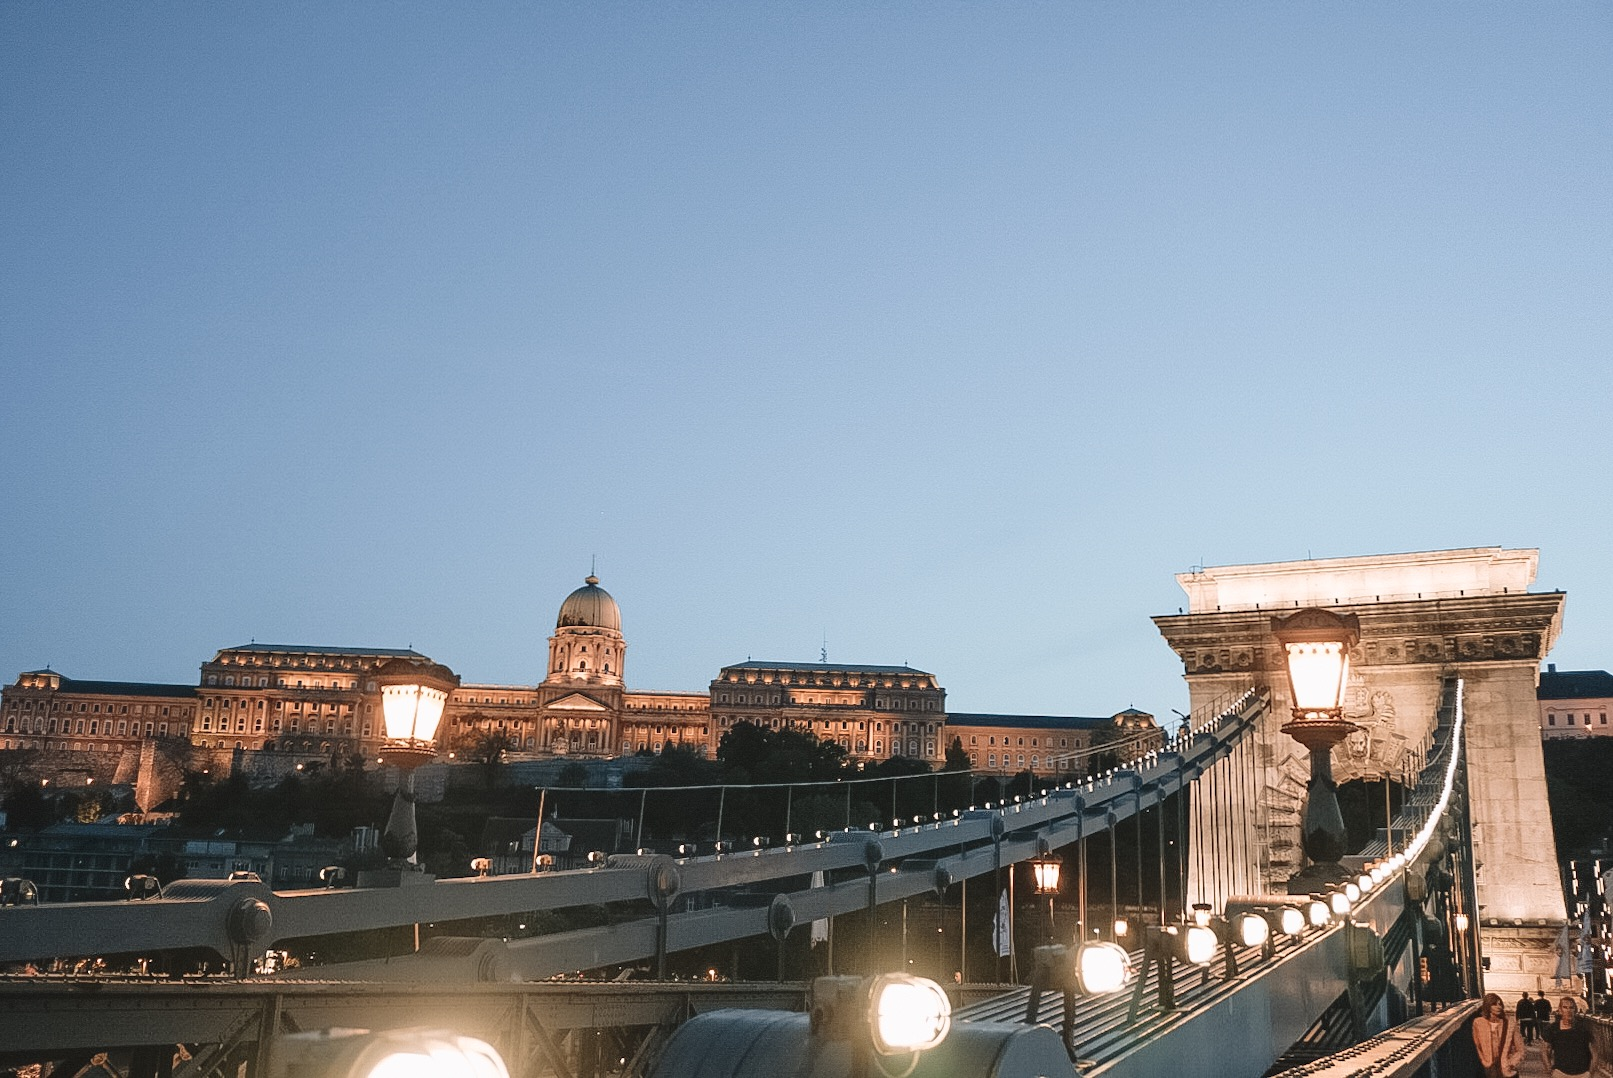 Szechenyi Chain Bridge:  connecting both the Pest and the Buda side of the city.